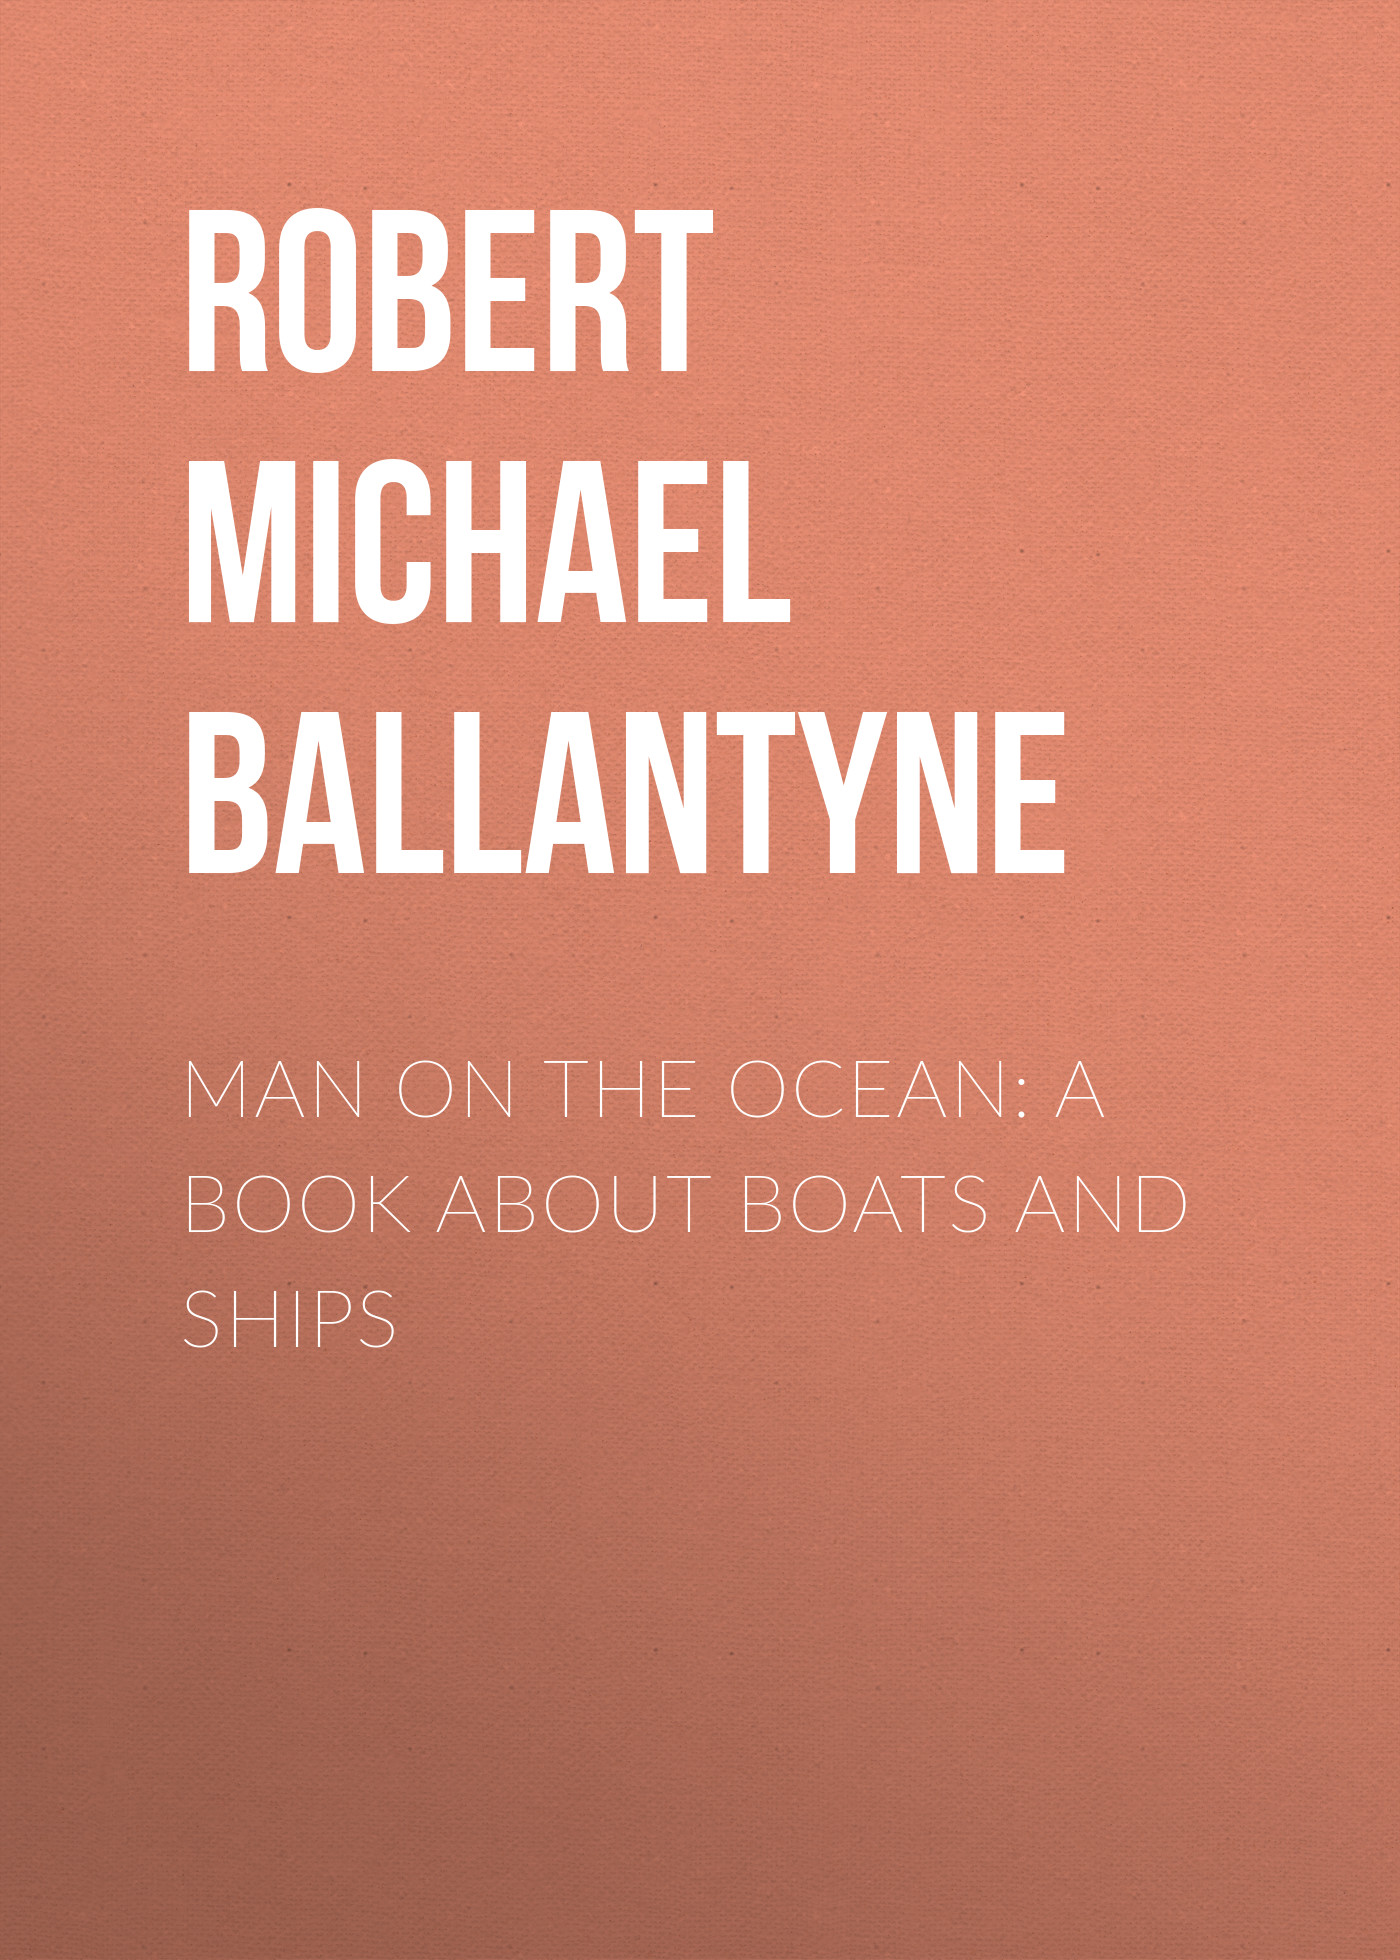 Robert Michael Ballantyne Man on the Ocean: A Book about Boats and Ships